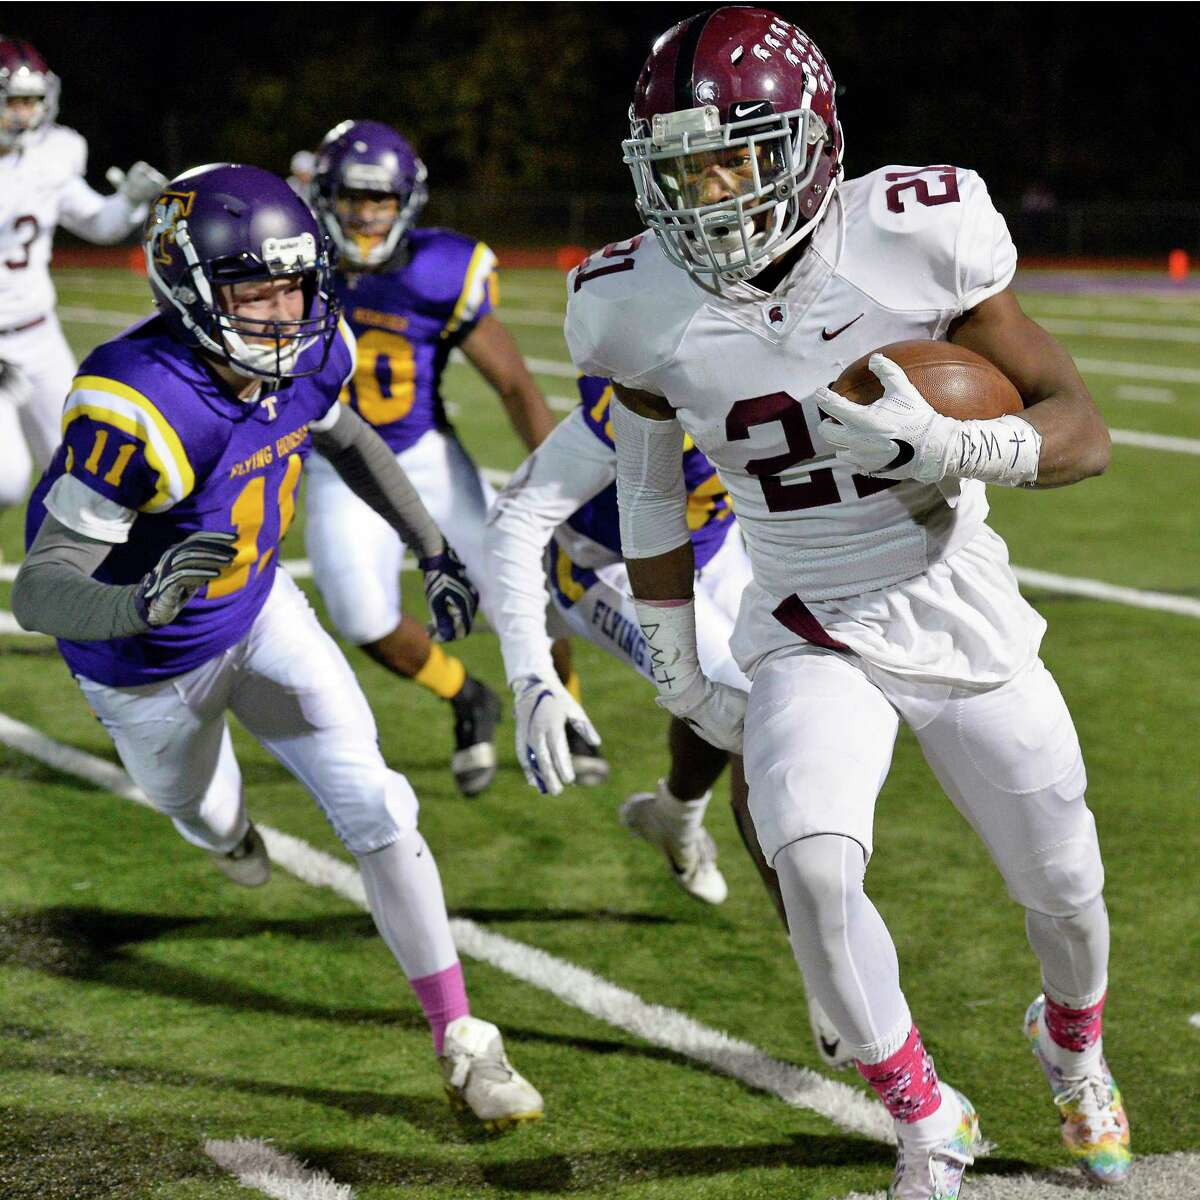 Here's Burnt Hills and Troy showing the modern Section II football game in October 2018. Continue viewing the slideshow to see the way football in the Capital Region used to look.